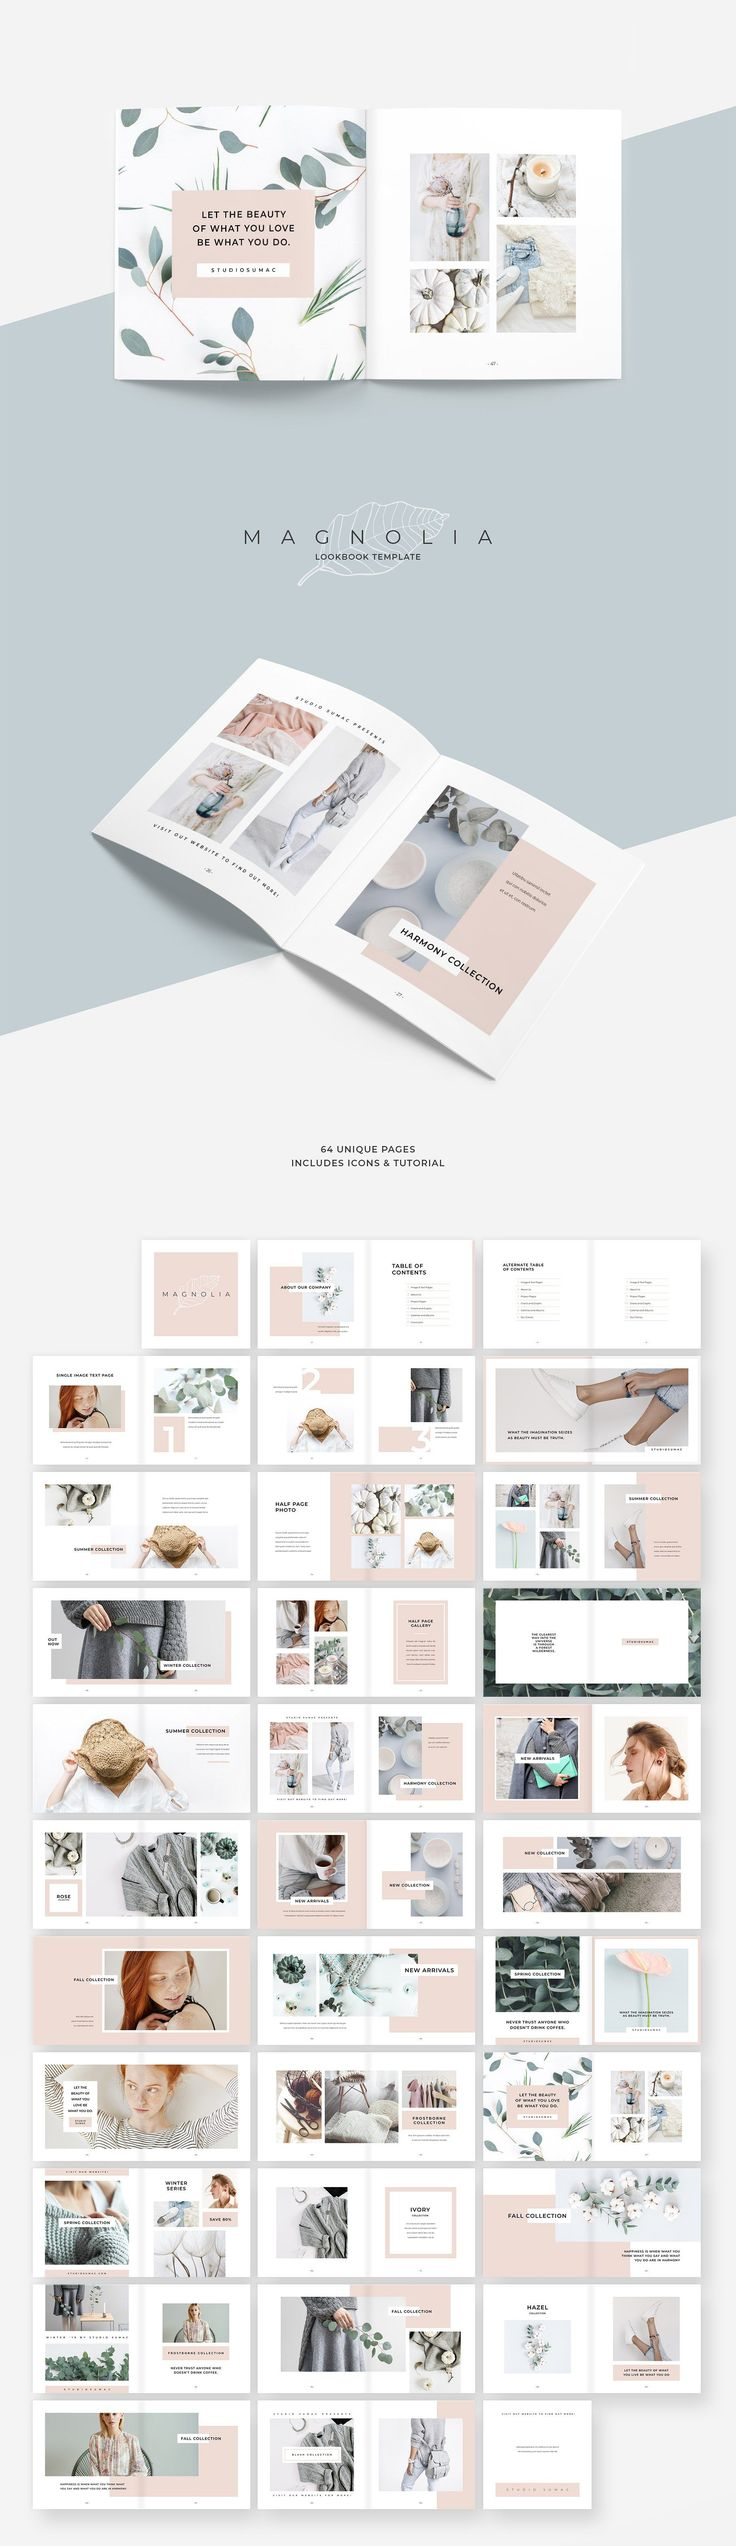 Maganolia Lookbook Template. An elegant and fashionable proposal template. Magnolia design line has a feminine, minimalist aesthetic that's both eye catching and professional. #lookbook #brochure #chic #minimal #portfolio #branding #proposal